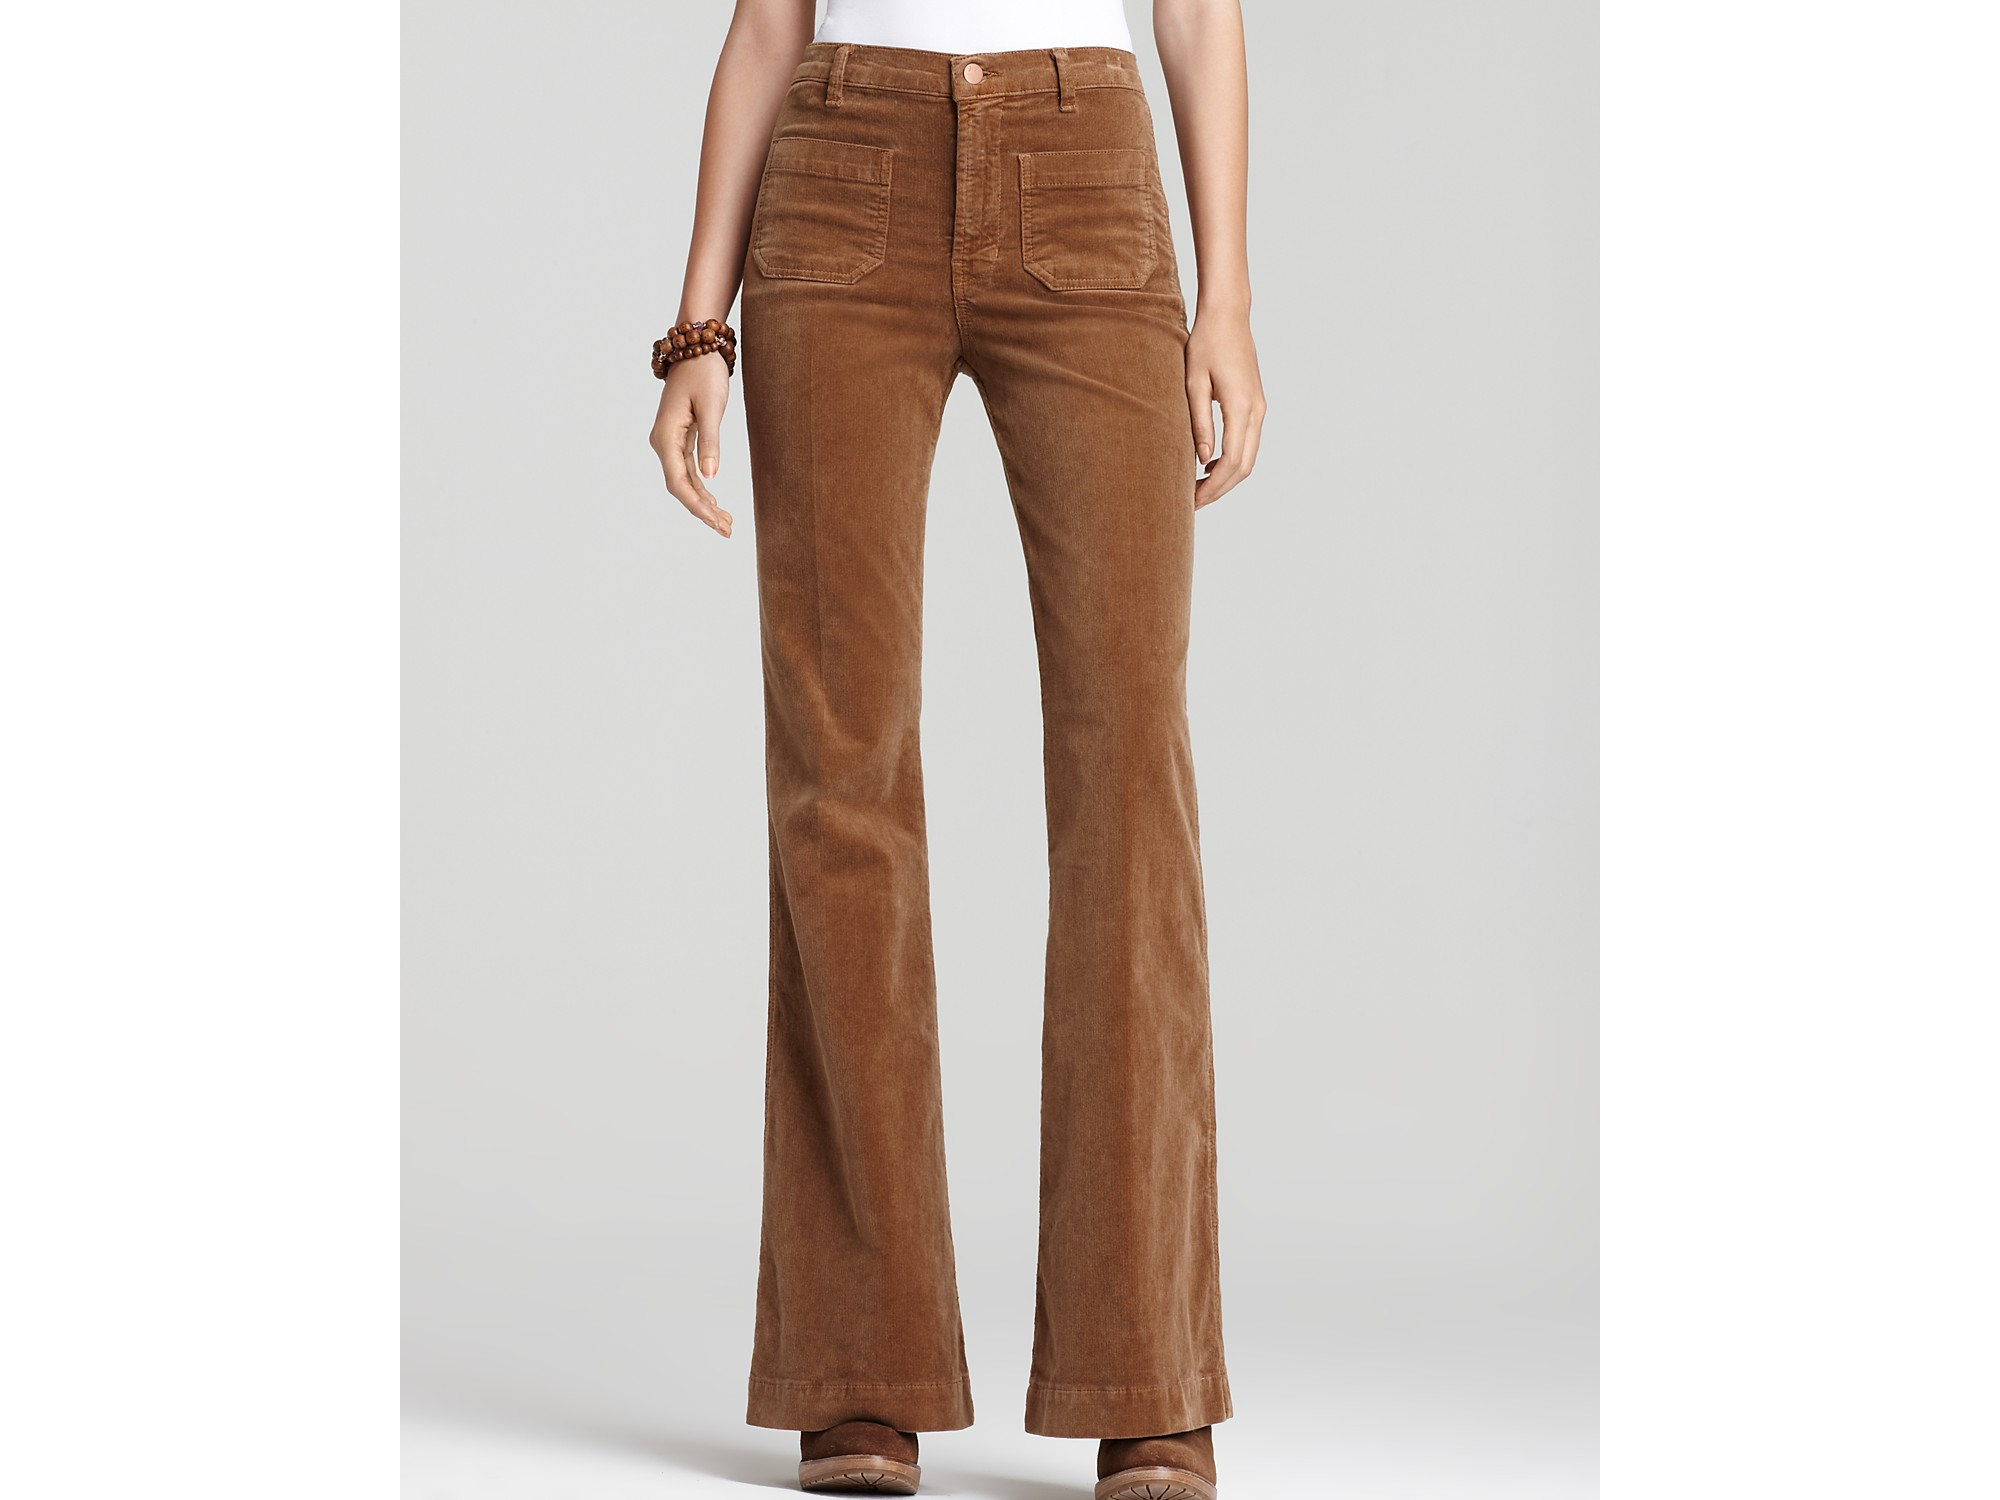 Women's Corduroy Retro Loose Fit Wide Leg Rolled Up Pant with Packet. from $ 29 99 Prime. out of 5 stars prAna. Women's Trinity Cord Pants. from $ 15 06 Prime. Corduroy Cropped Wide Leg Pants Women's Elastic Waist Culotte Corduroy Pants w/Side Pockets $ 39 Calvin Klein Jeans.